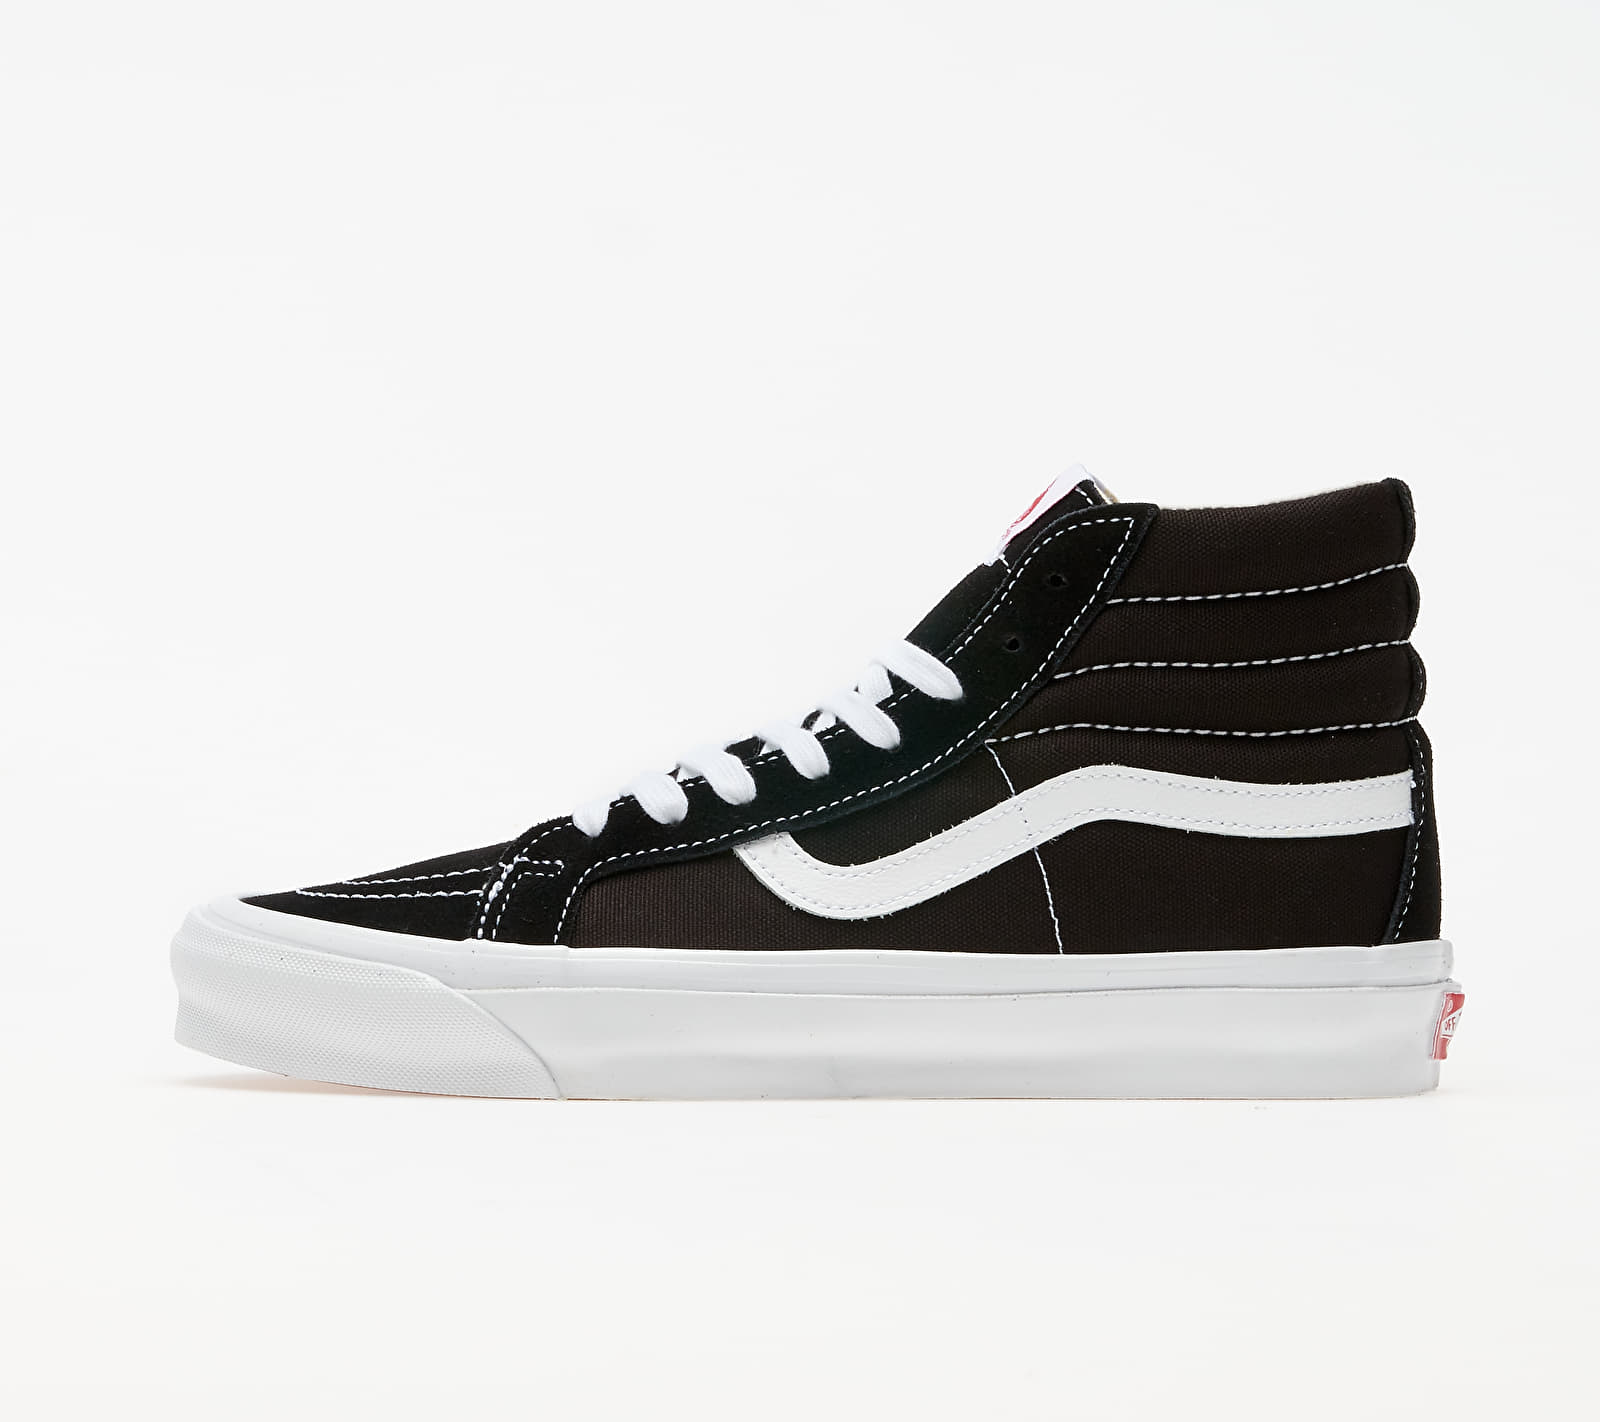 Vans Vault OG Sk8-Hi LX (Suede/ Canvas) Black/ True White EUR 38.5